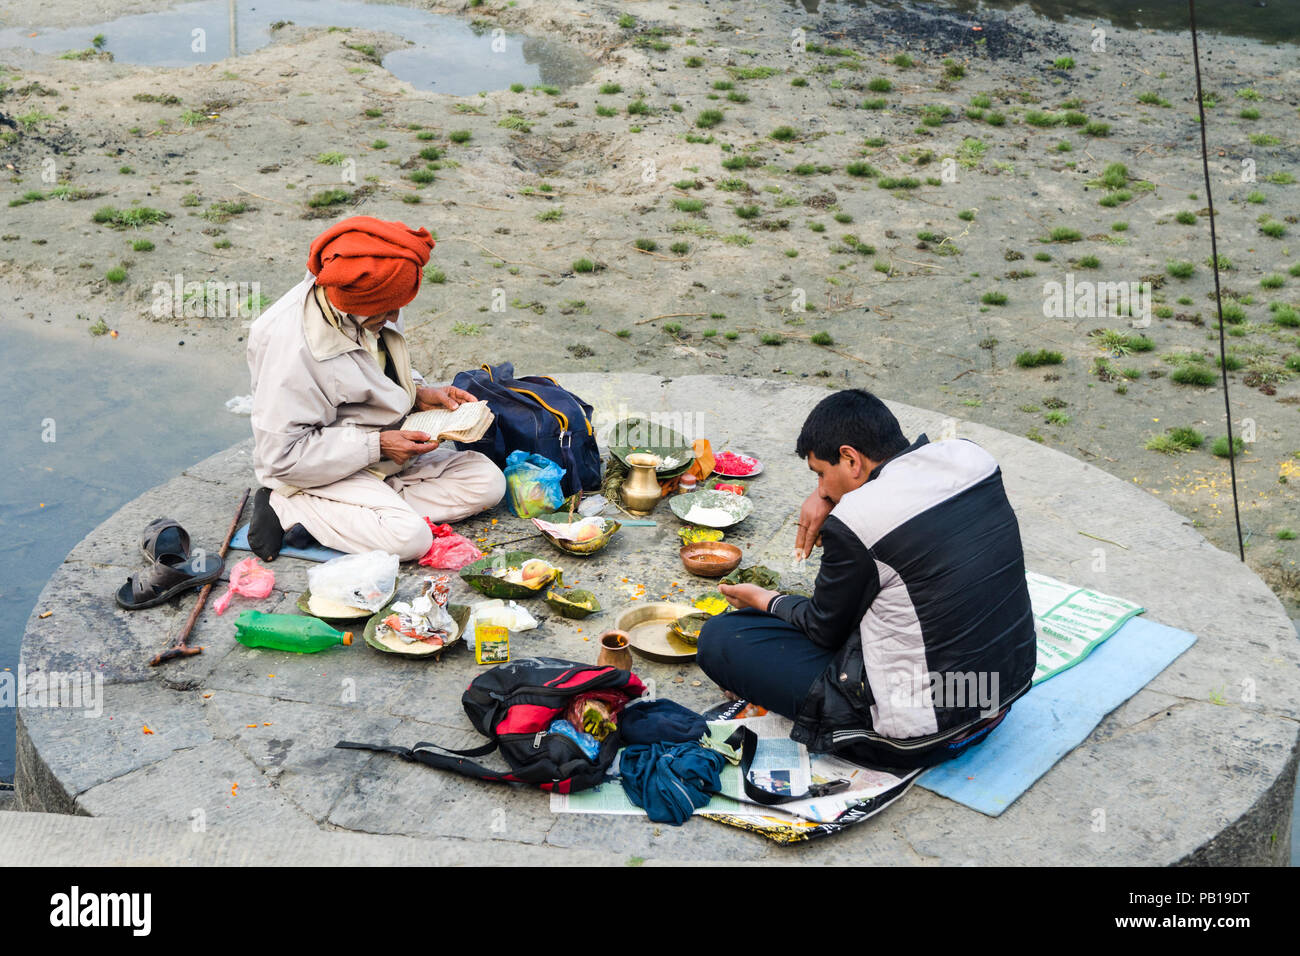 Hindu ritual on the banks of Bagmati river during Maha Shivaratri, Pashupatinath Temple, Kathmandu, Nepal - Stock Image